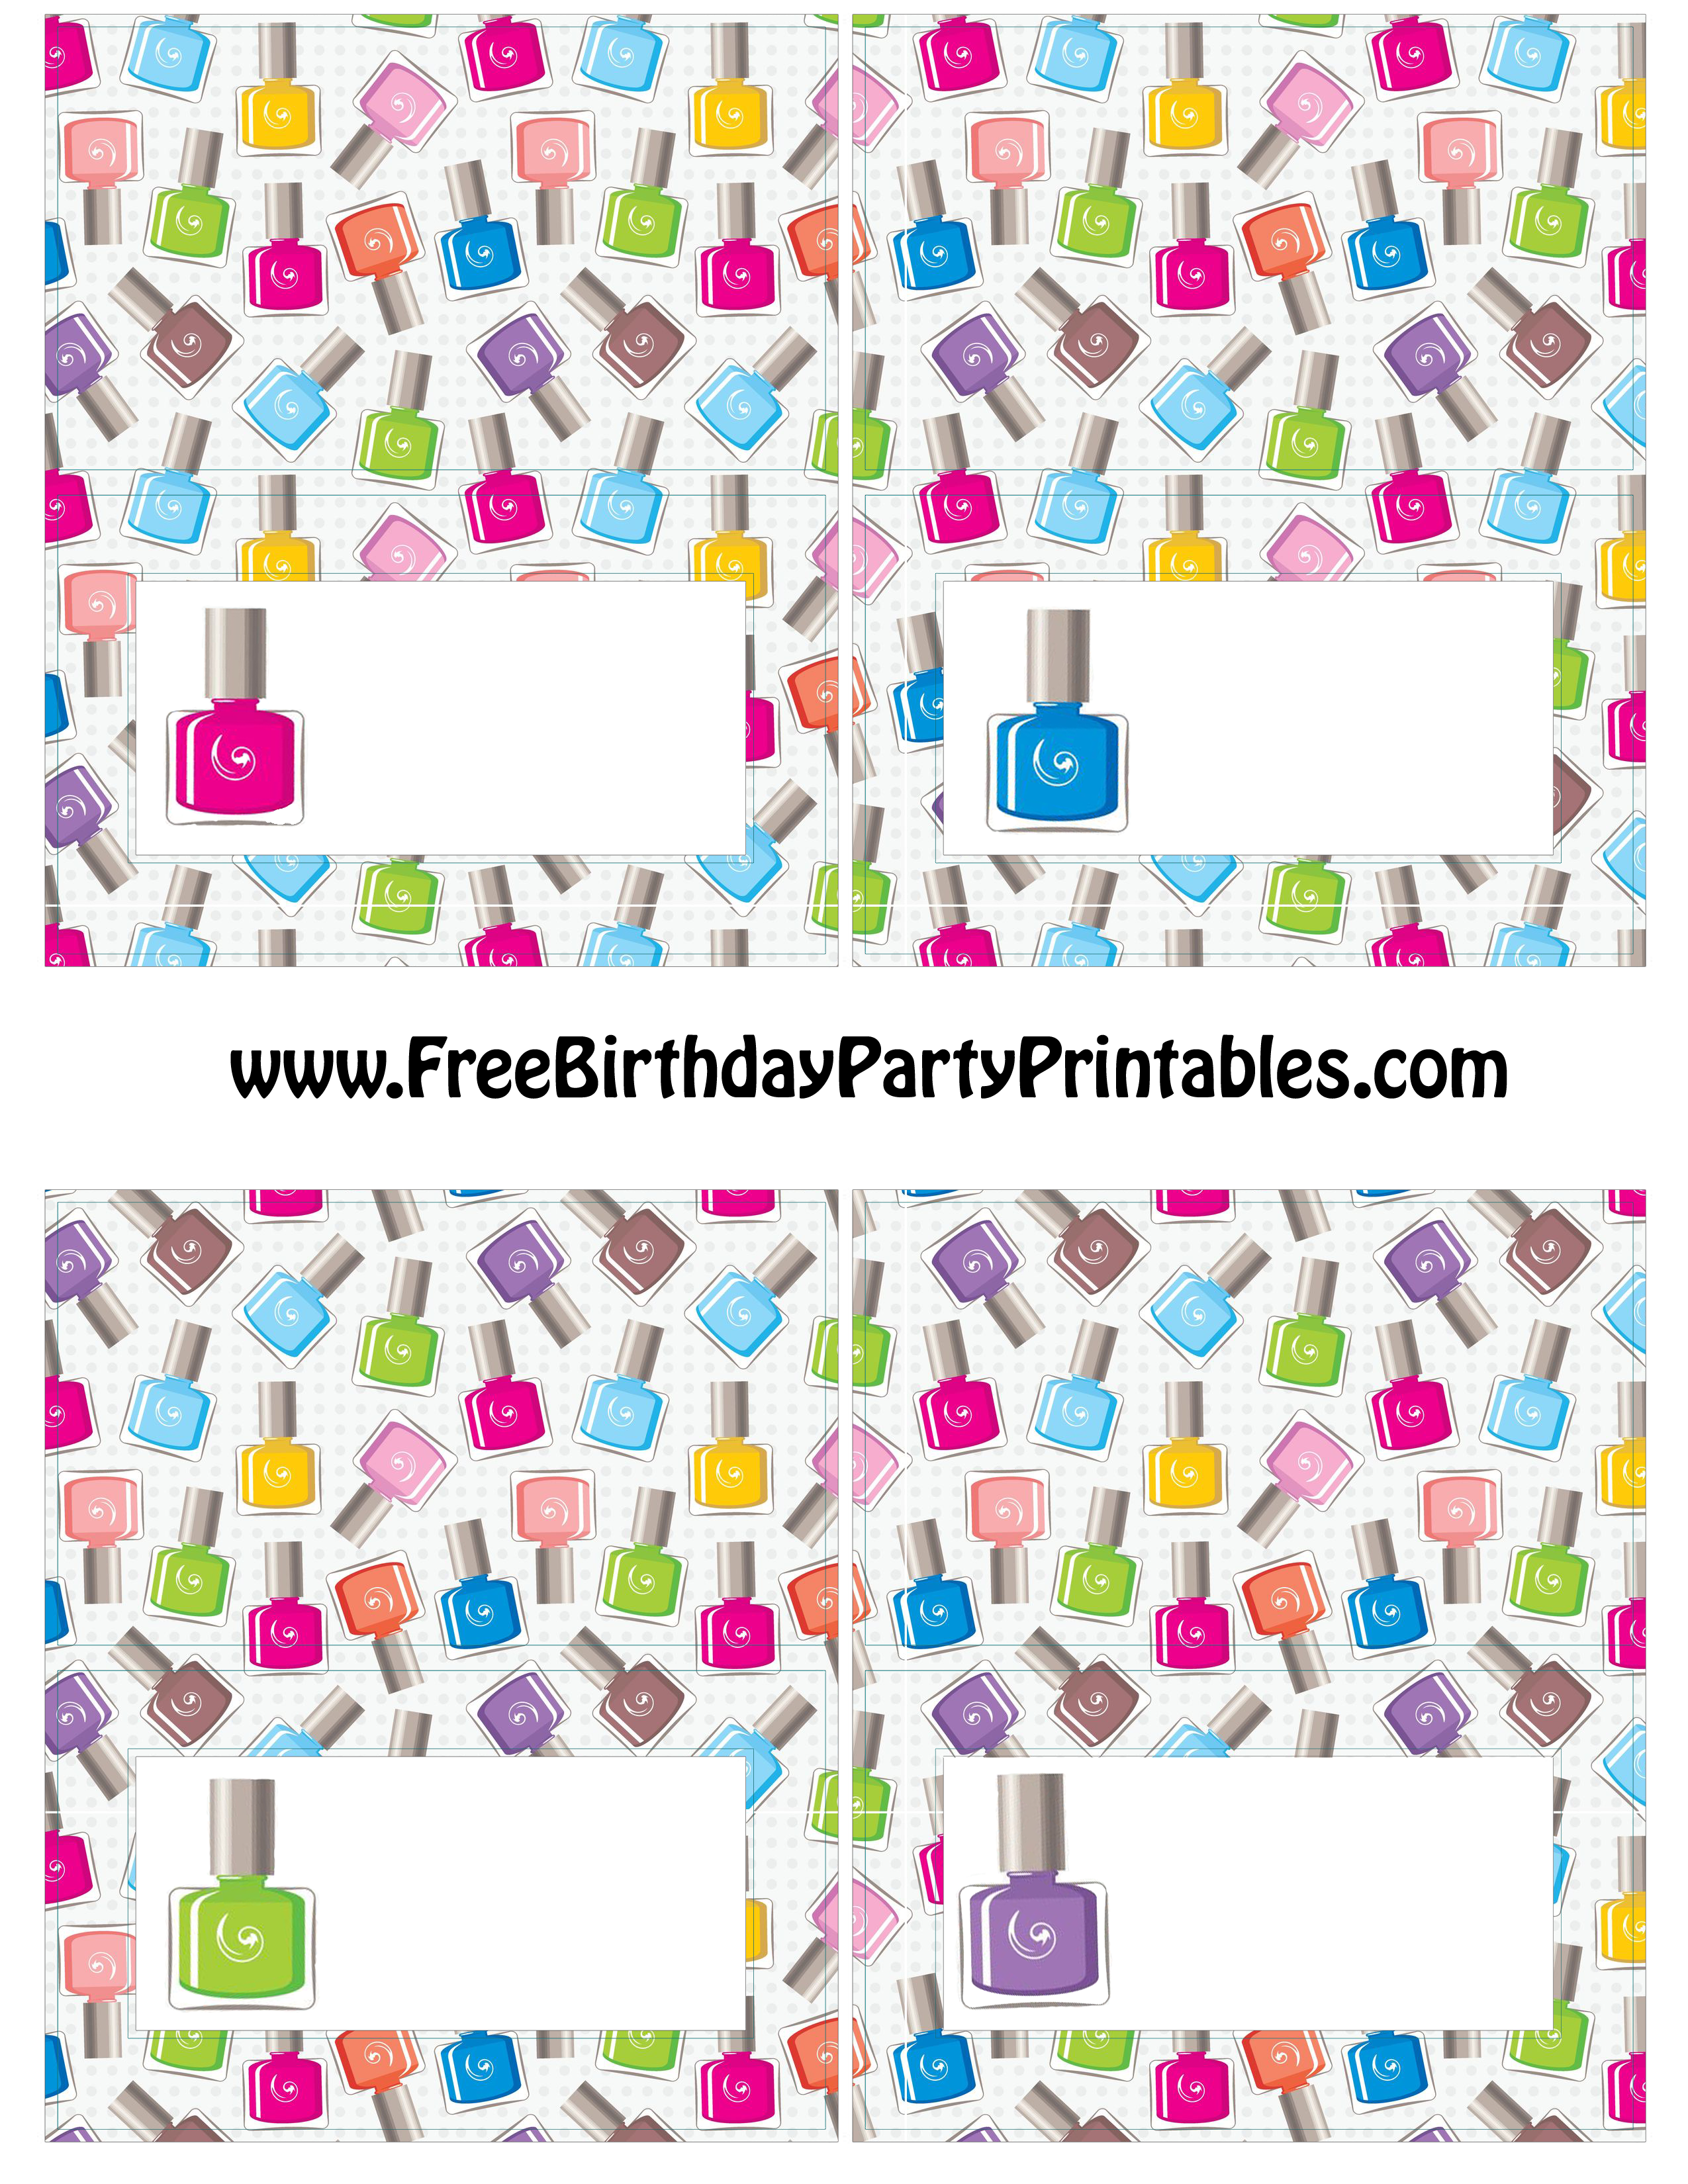 Free Nail Polish Birthday Party Food Tent Card Template by Free Birthday Party Printables Paint Your Nails Stations Nail Stickers Jewels Glitter.png or ...  sc 1 st  Pinterest & Free Nail Polish Birthday Party Printables | Misc. Plastic Bag ...